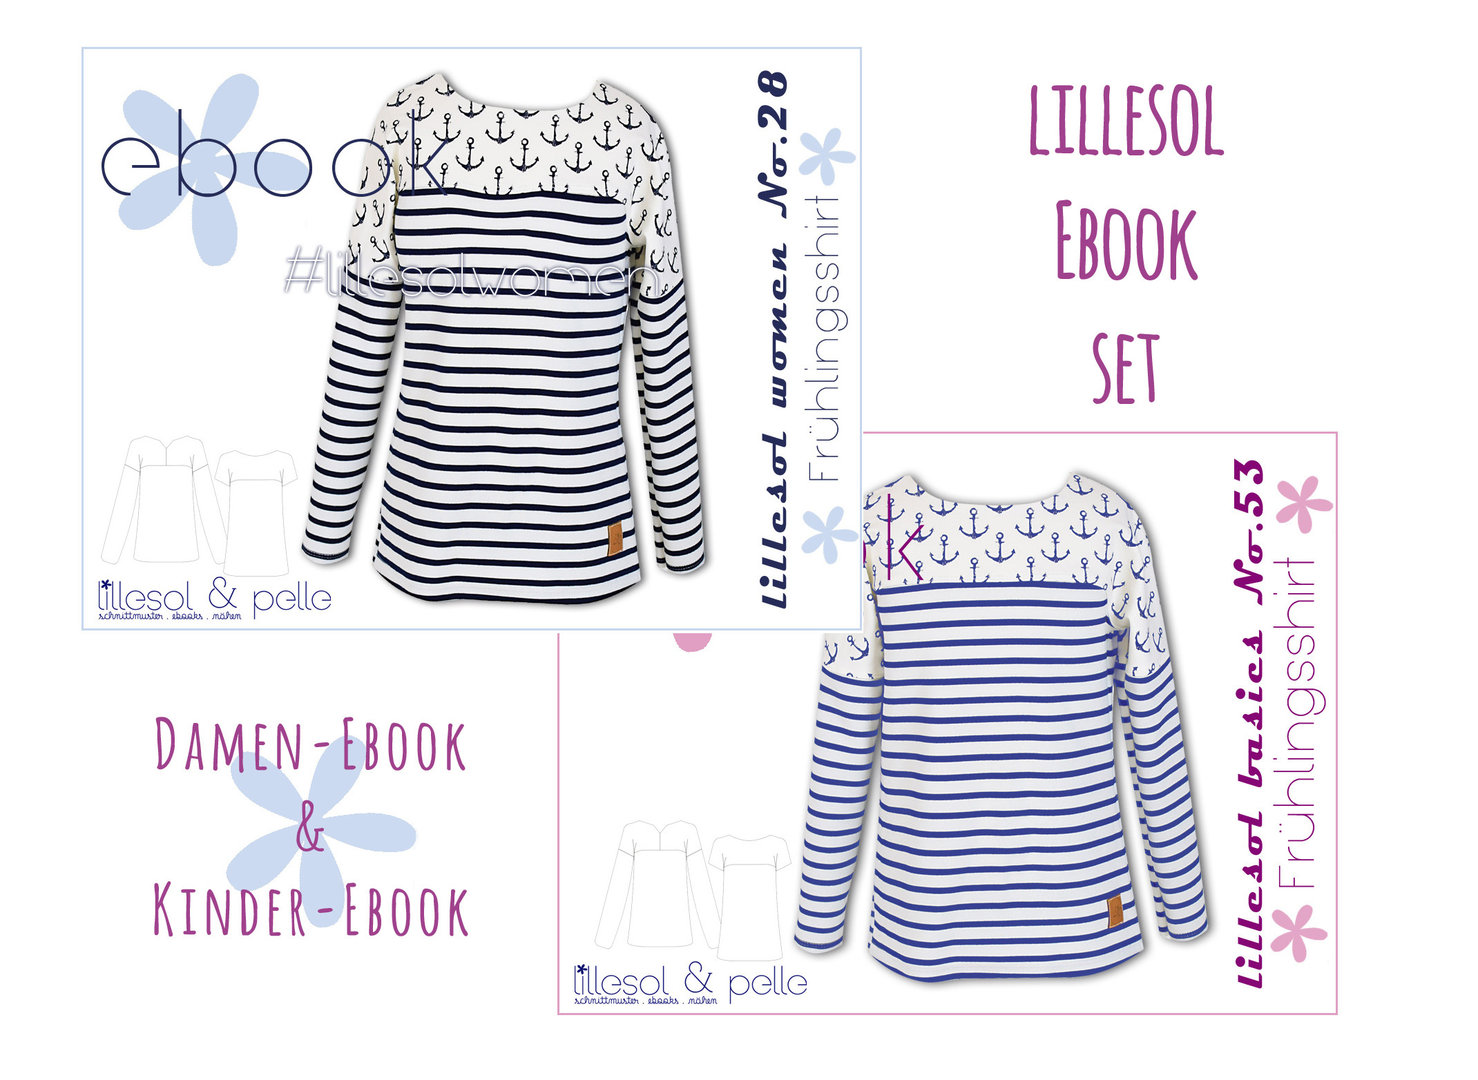 lillesol ebook set basics No.53 und women No.28